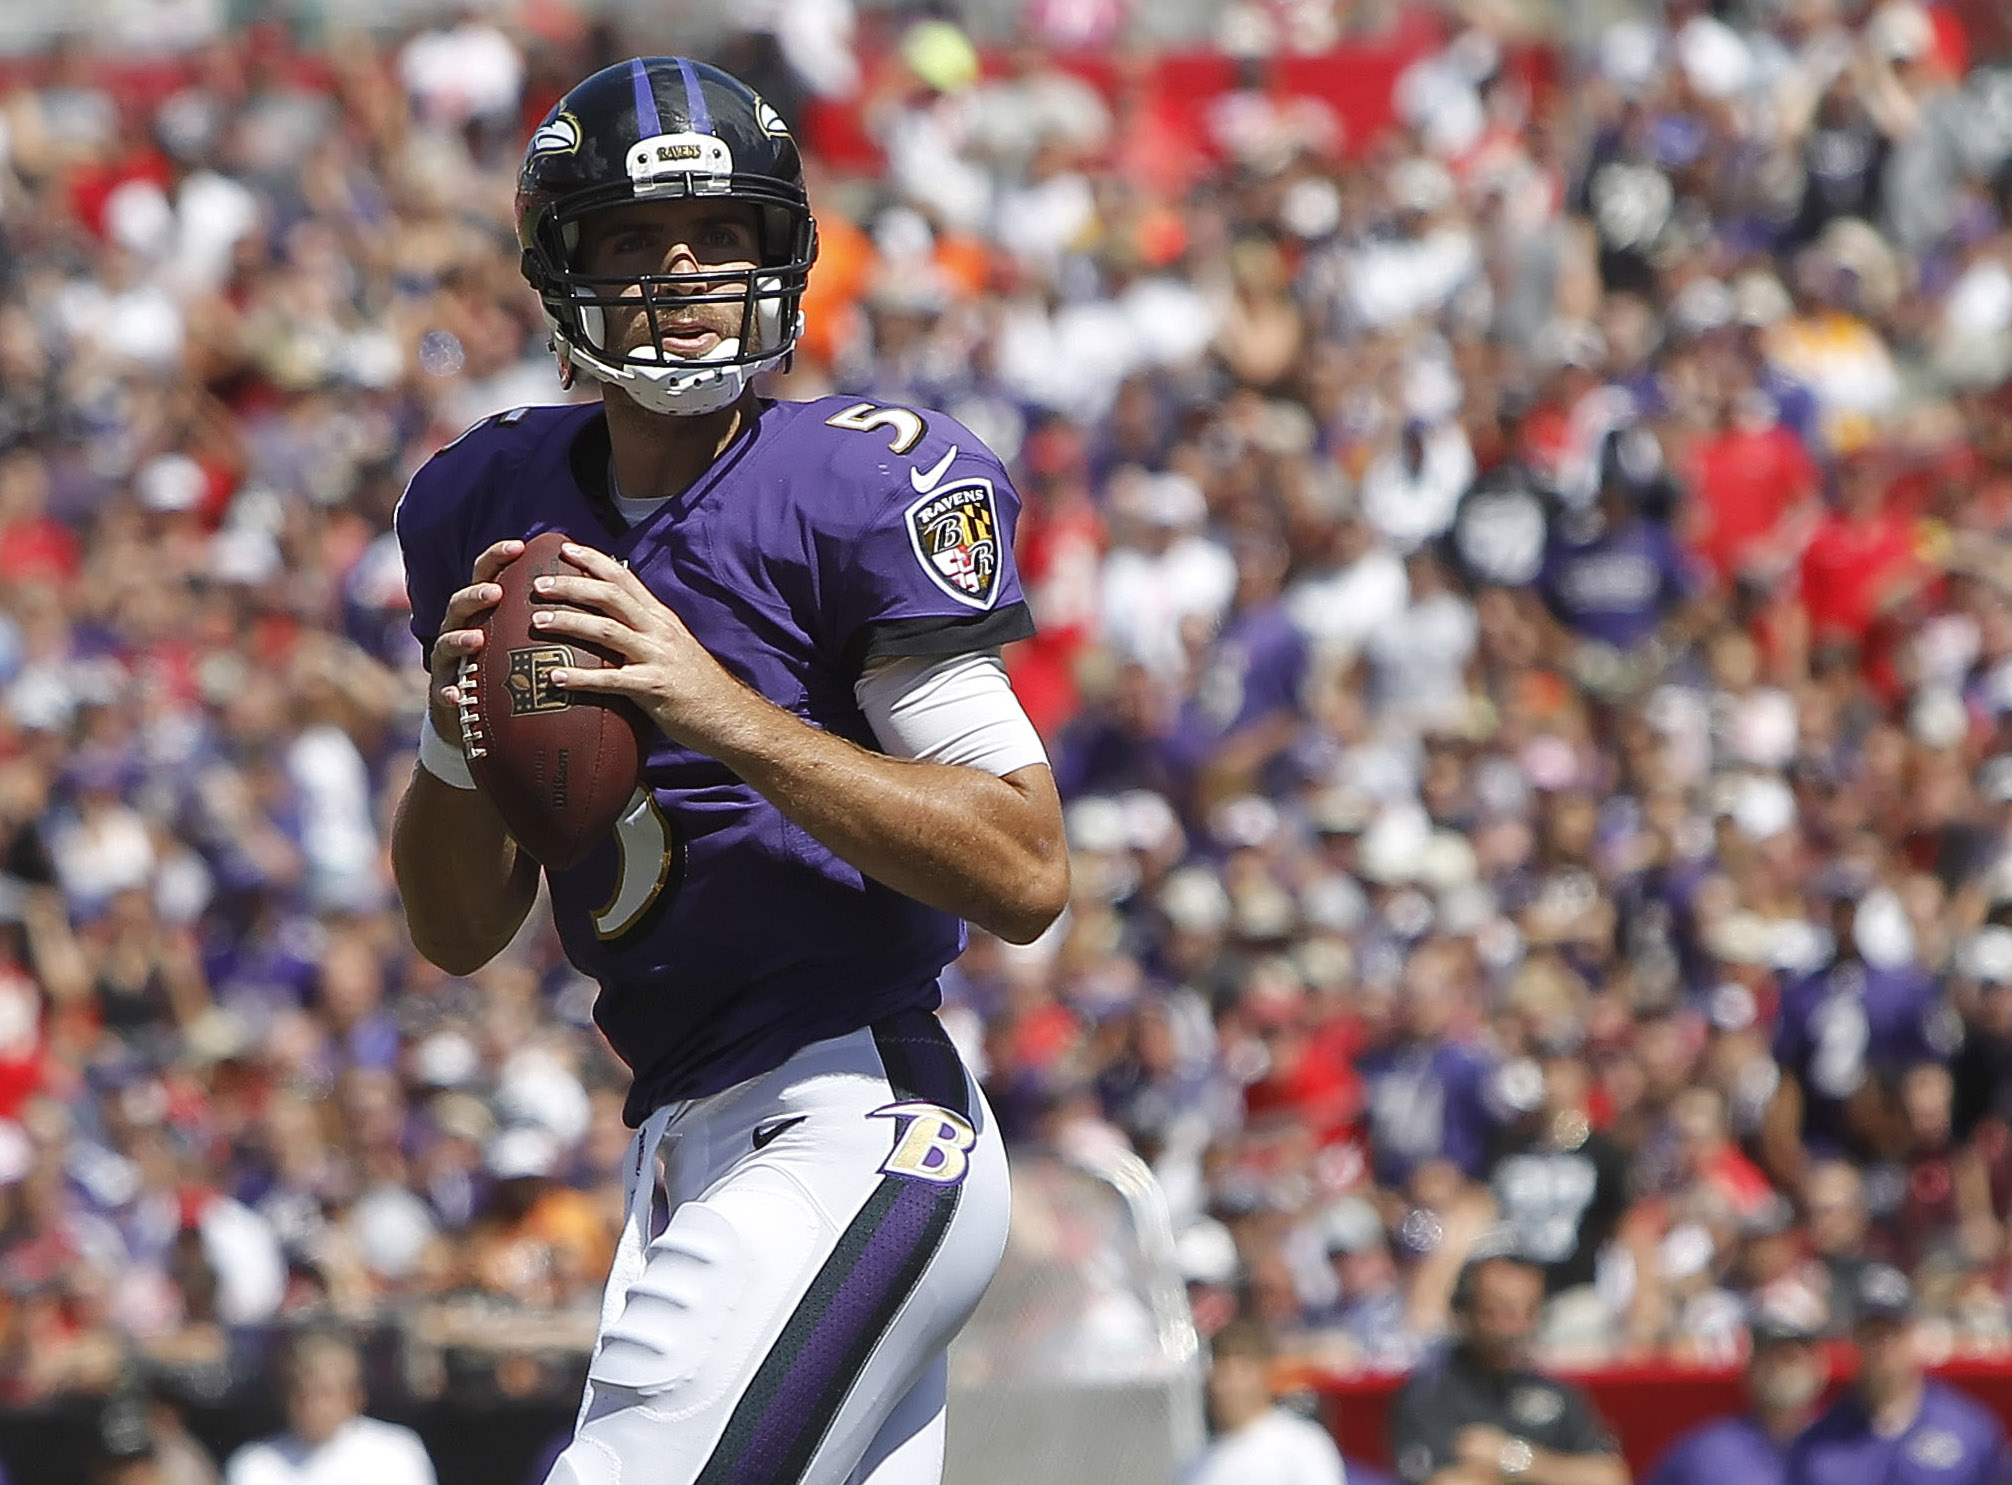 8138223-nfl-baltimore-ravens-at-tampa-bay-buccaneers